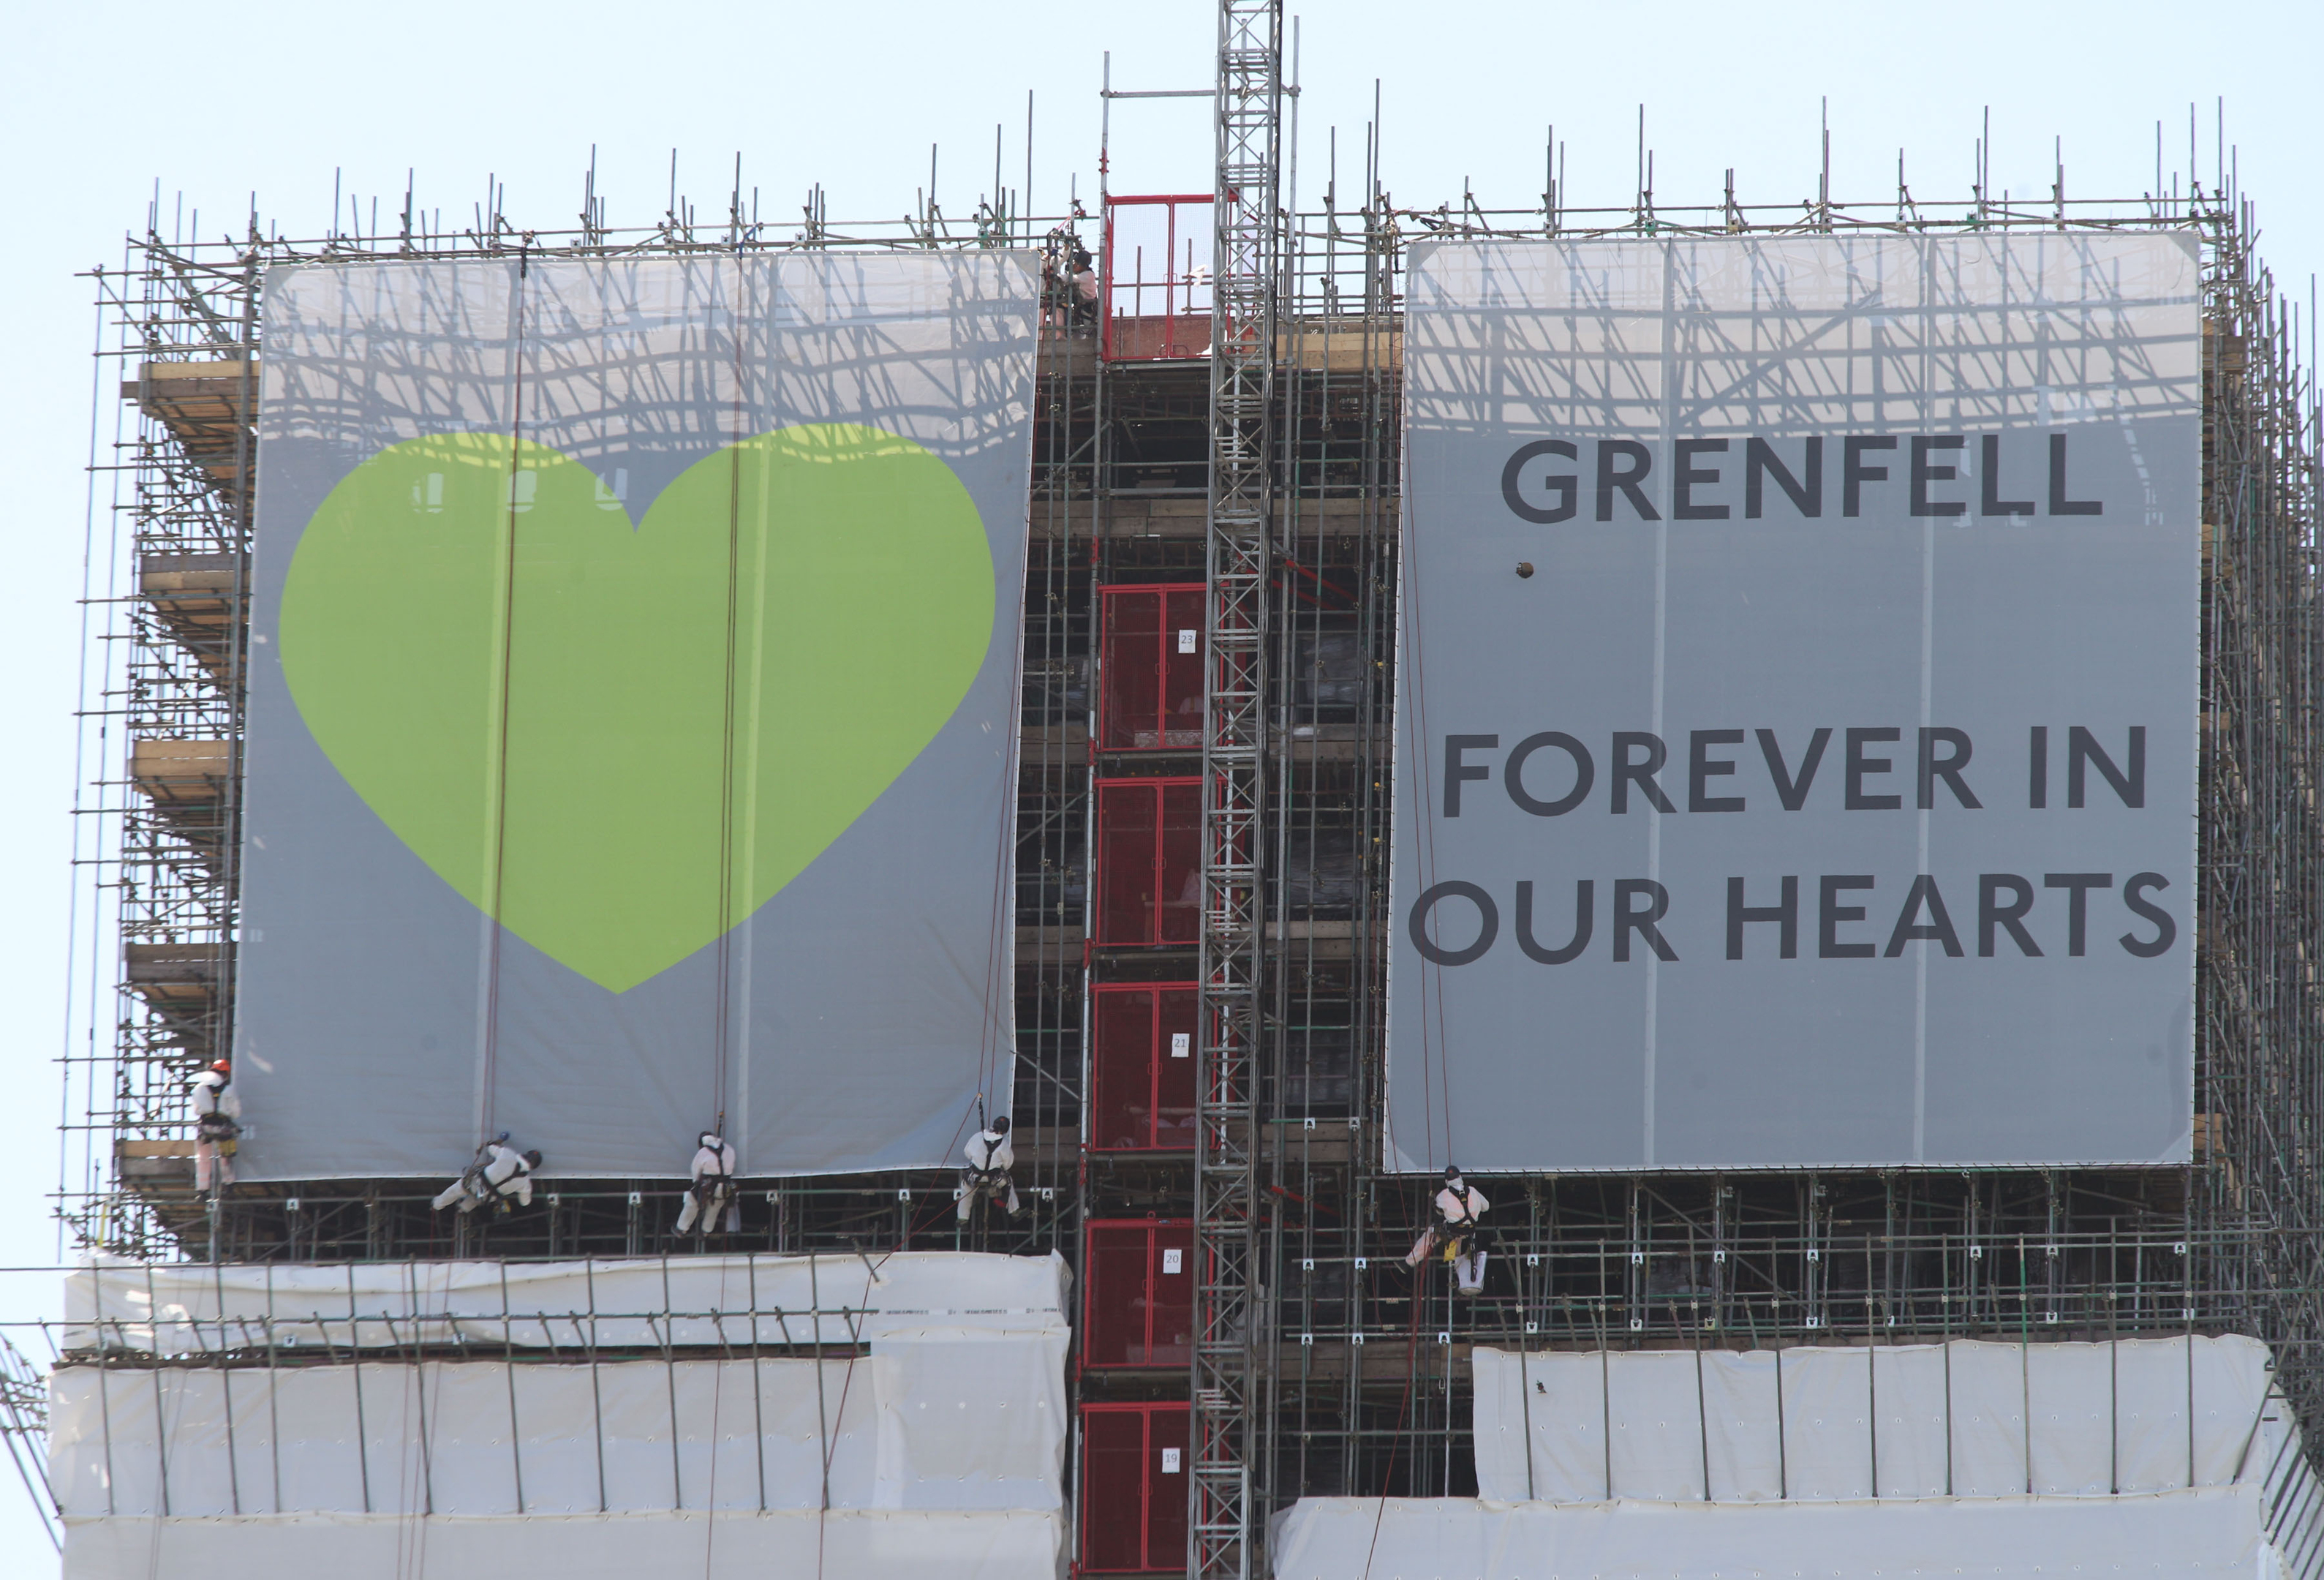 Banners are unveiled on the outside of Grenfell Tower in west London (Yui Mok / PA Wire)